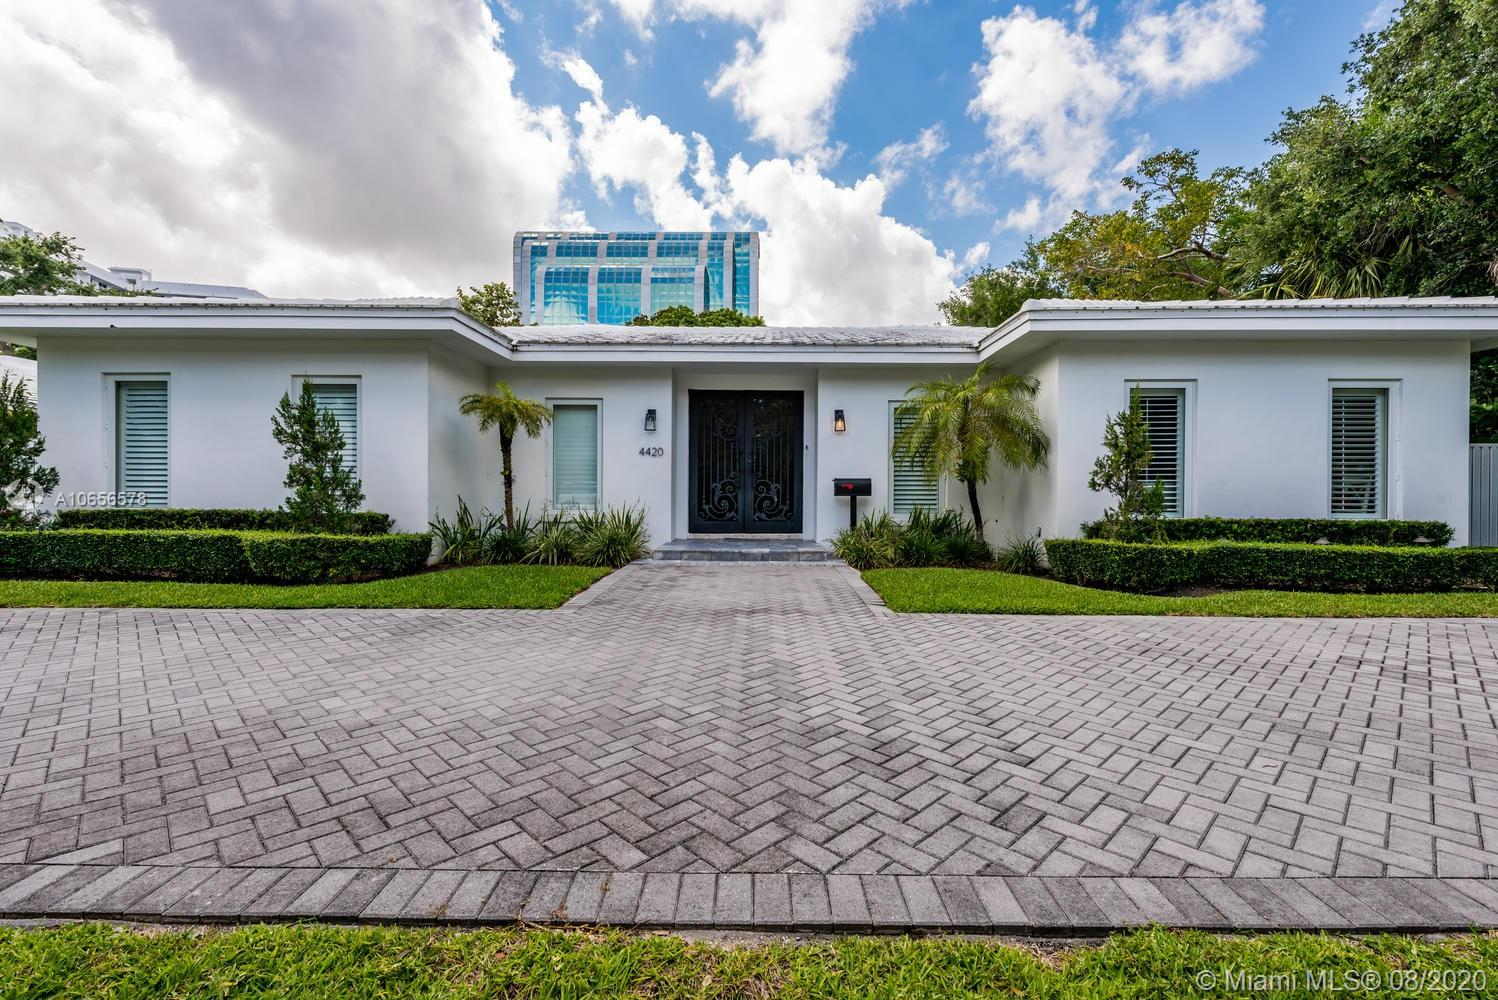 Exclusivity meets Modern Luxury. Fully remodeled in 2014. This gem boasts 4,000 Sq.Ft. living space;13,760 lot;4 bed/4 baths open-space living;Kahr imported wide plank white washed floors;recessed WAC LED lighting;Italian 8ft doors;custom built-in closets; marble & onyx throughout bathrooms;Italian kitchen;Viking appliances;white quartz counter tops;heated salt-water pool & Guest house all surrounded by blue sapphire marble. Located in Bay Point & nestled across from famous Miami Design District.